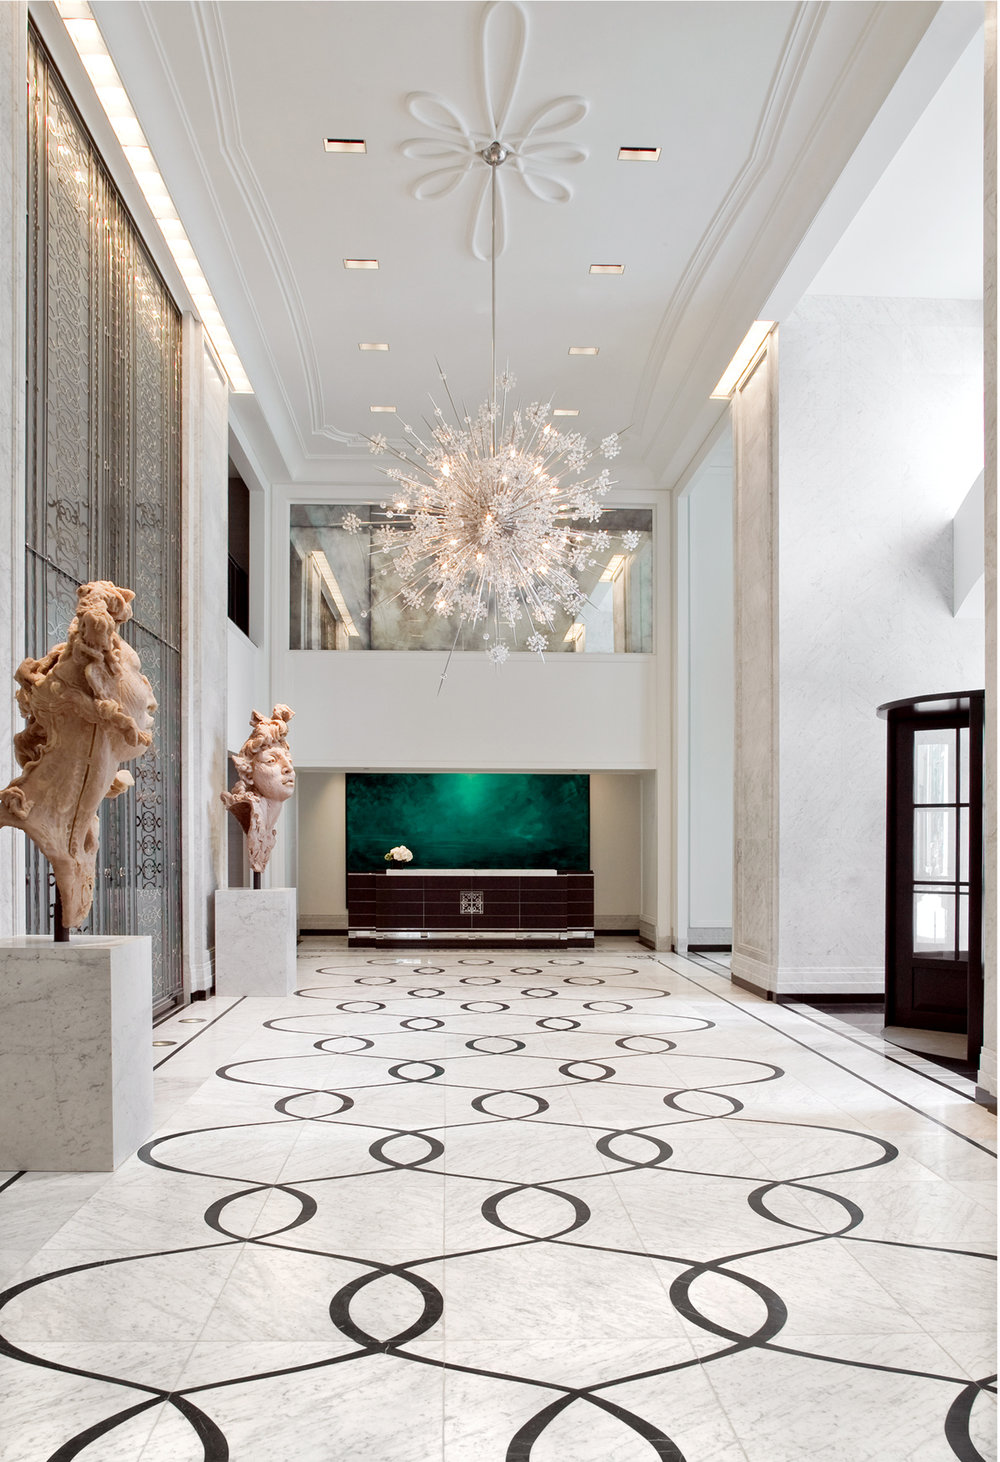 Elysian Hotel, currently Waldorf Astoria | Design Firm: Simeone Deary Design Group